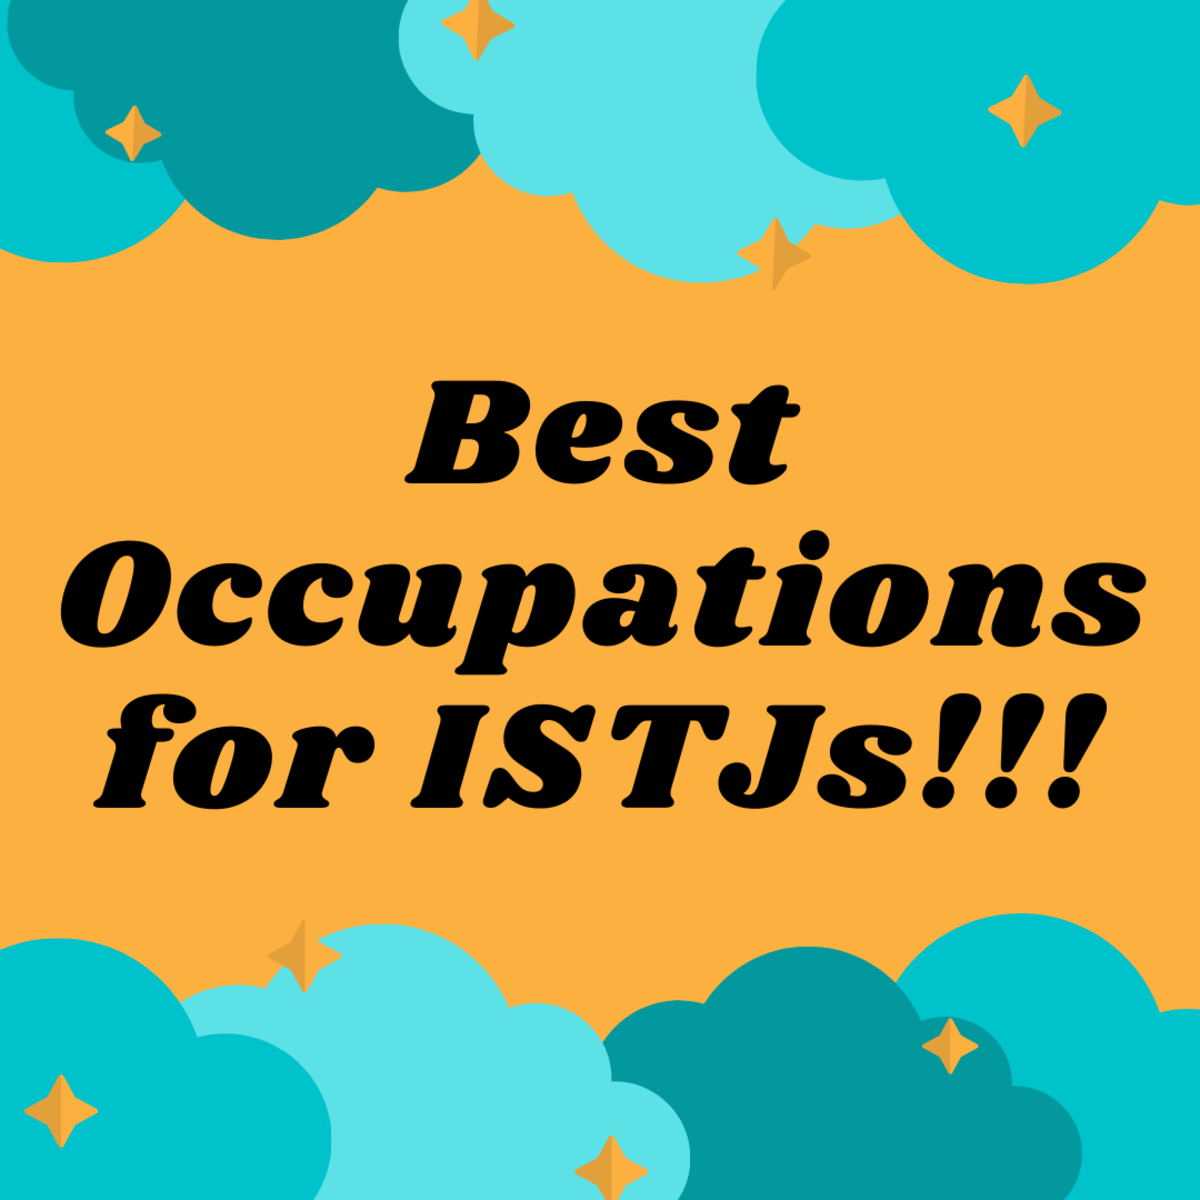 Looking for a new job? Read on to find out which jobs suite your ISTJ personality!